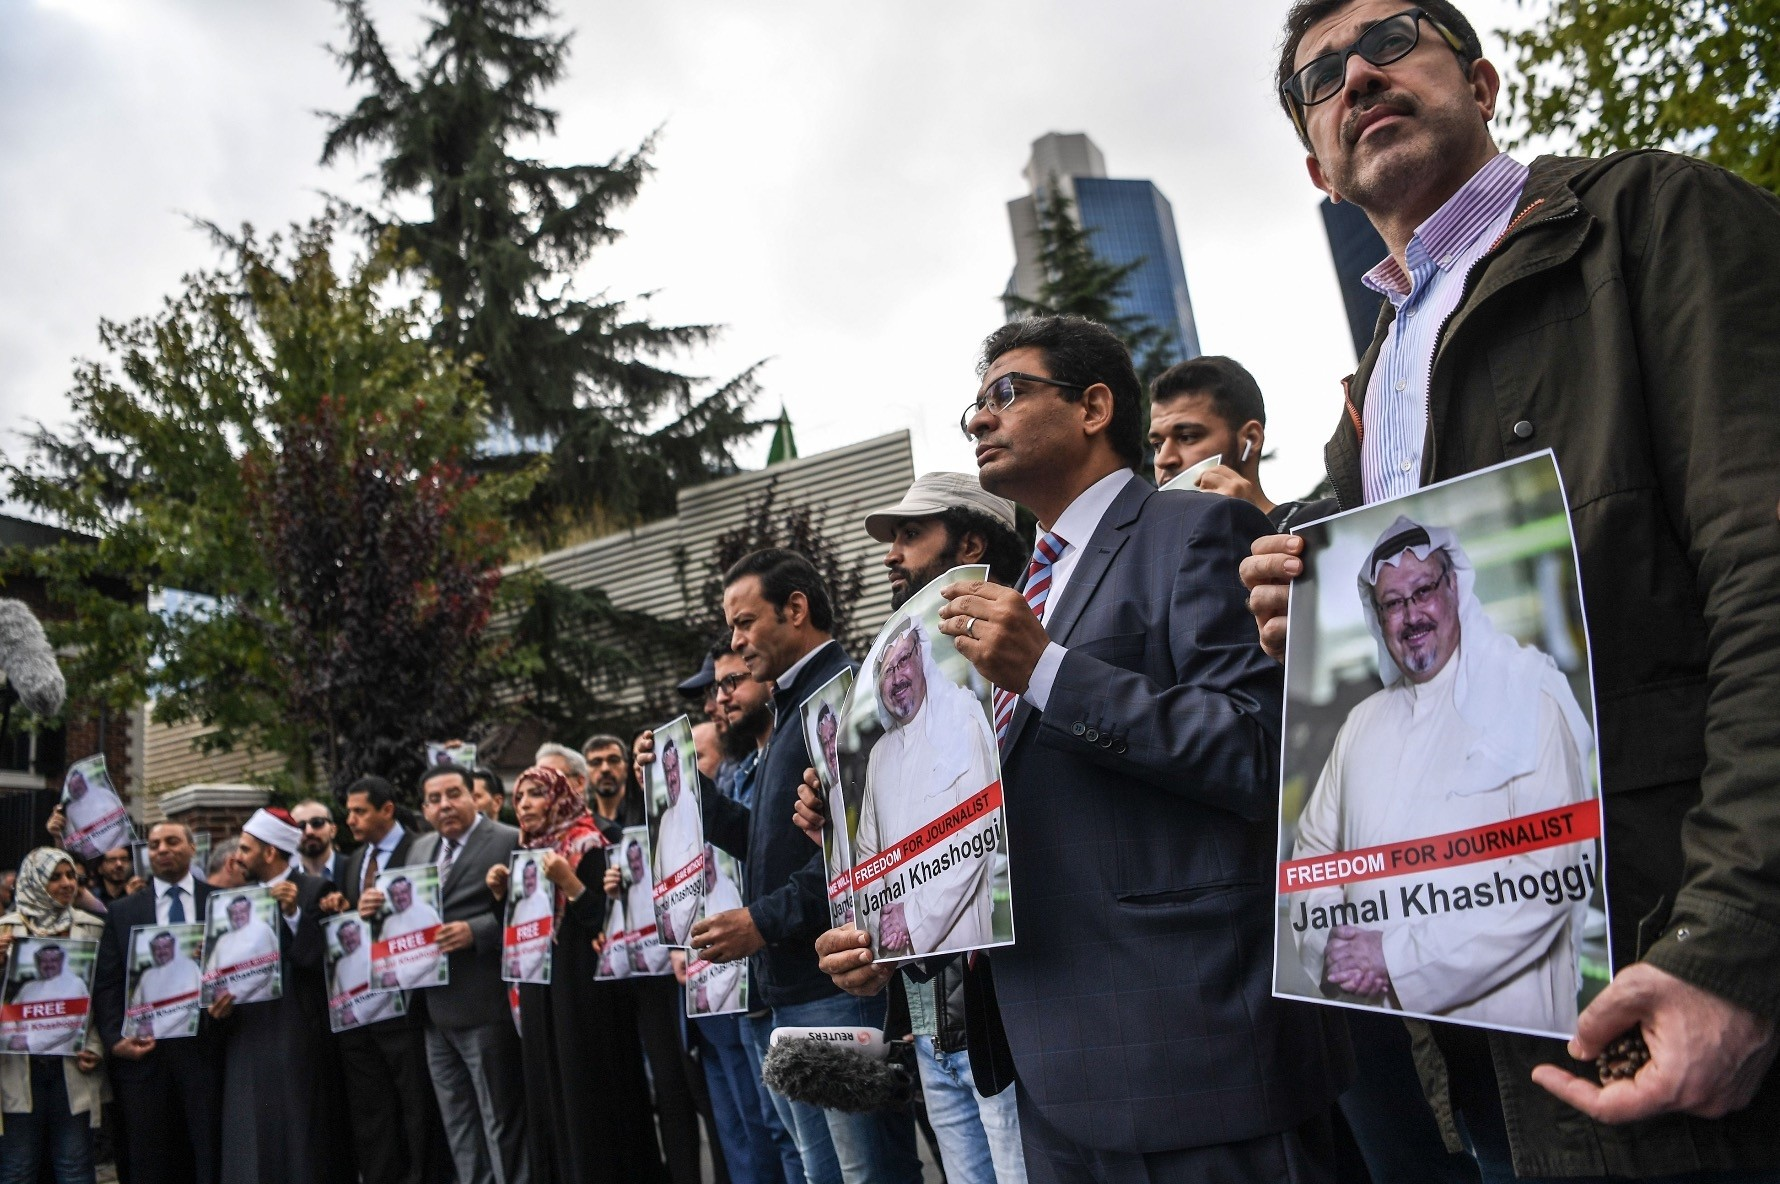 Protesters hold pictures of Jamal Khashoggi during a demonstration in front of the Saudi Consulate in Istanbul, Oct. 8.